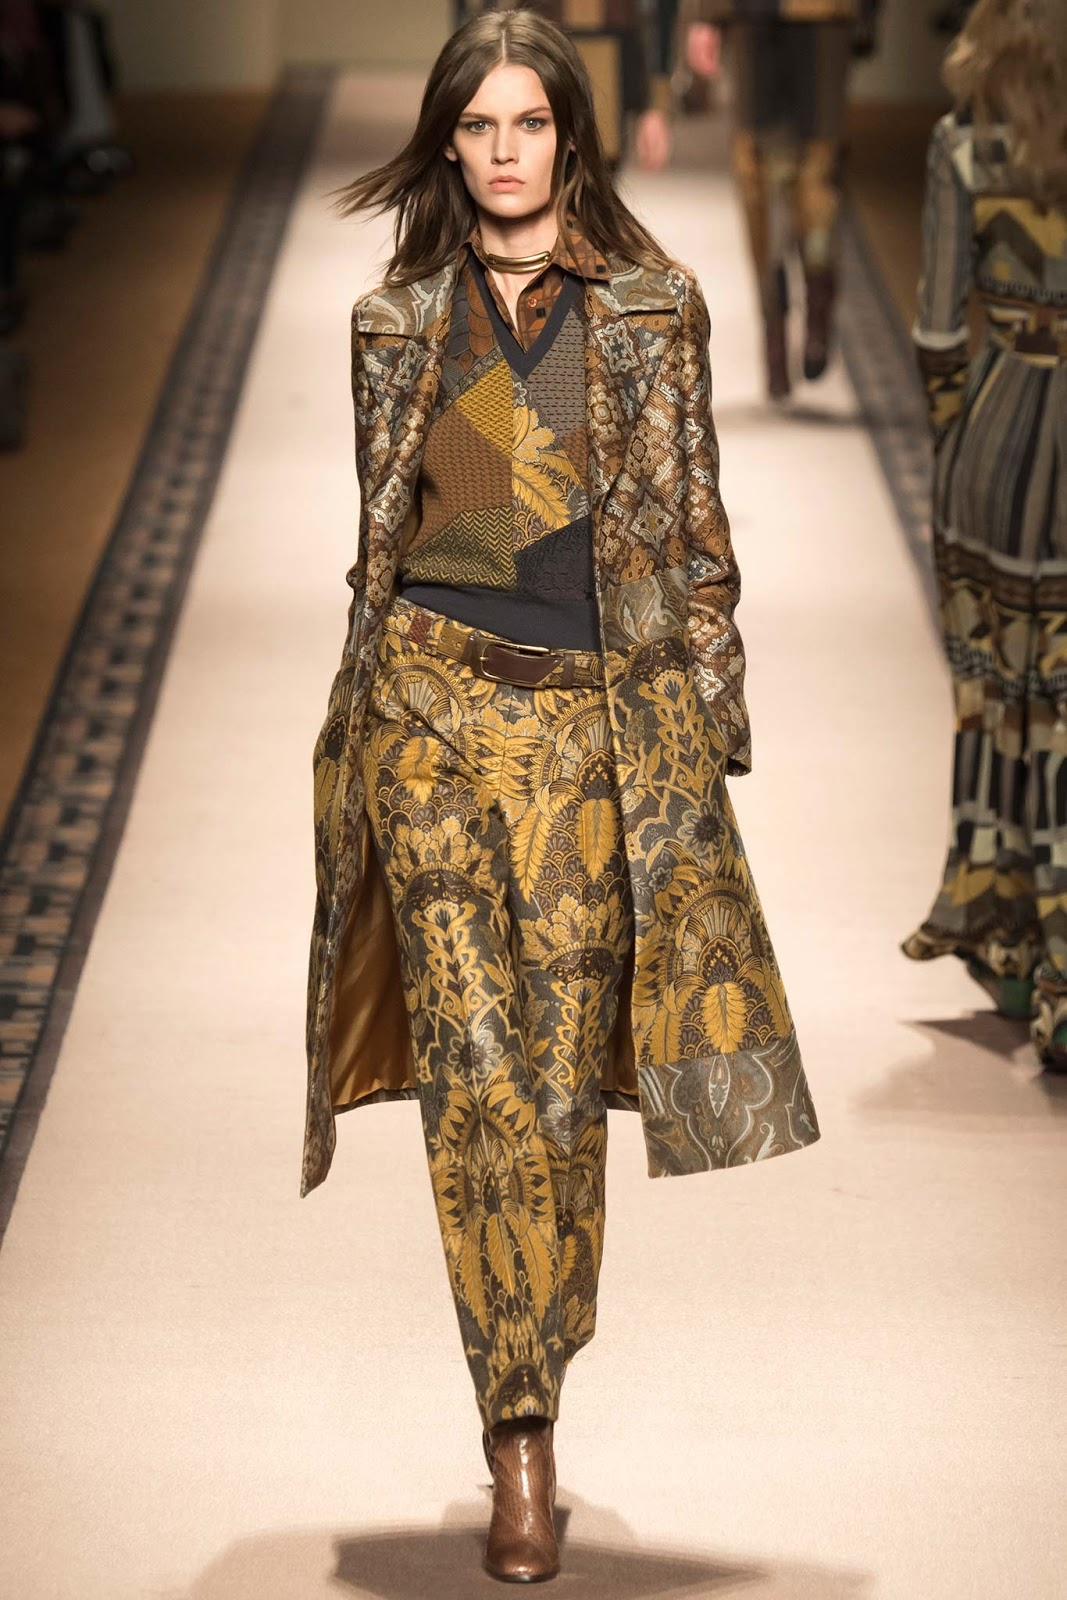 Brocade trend on AW 2015 runway at Etro / via www.fashionedbylove.co.uk